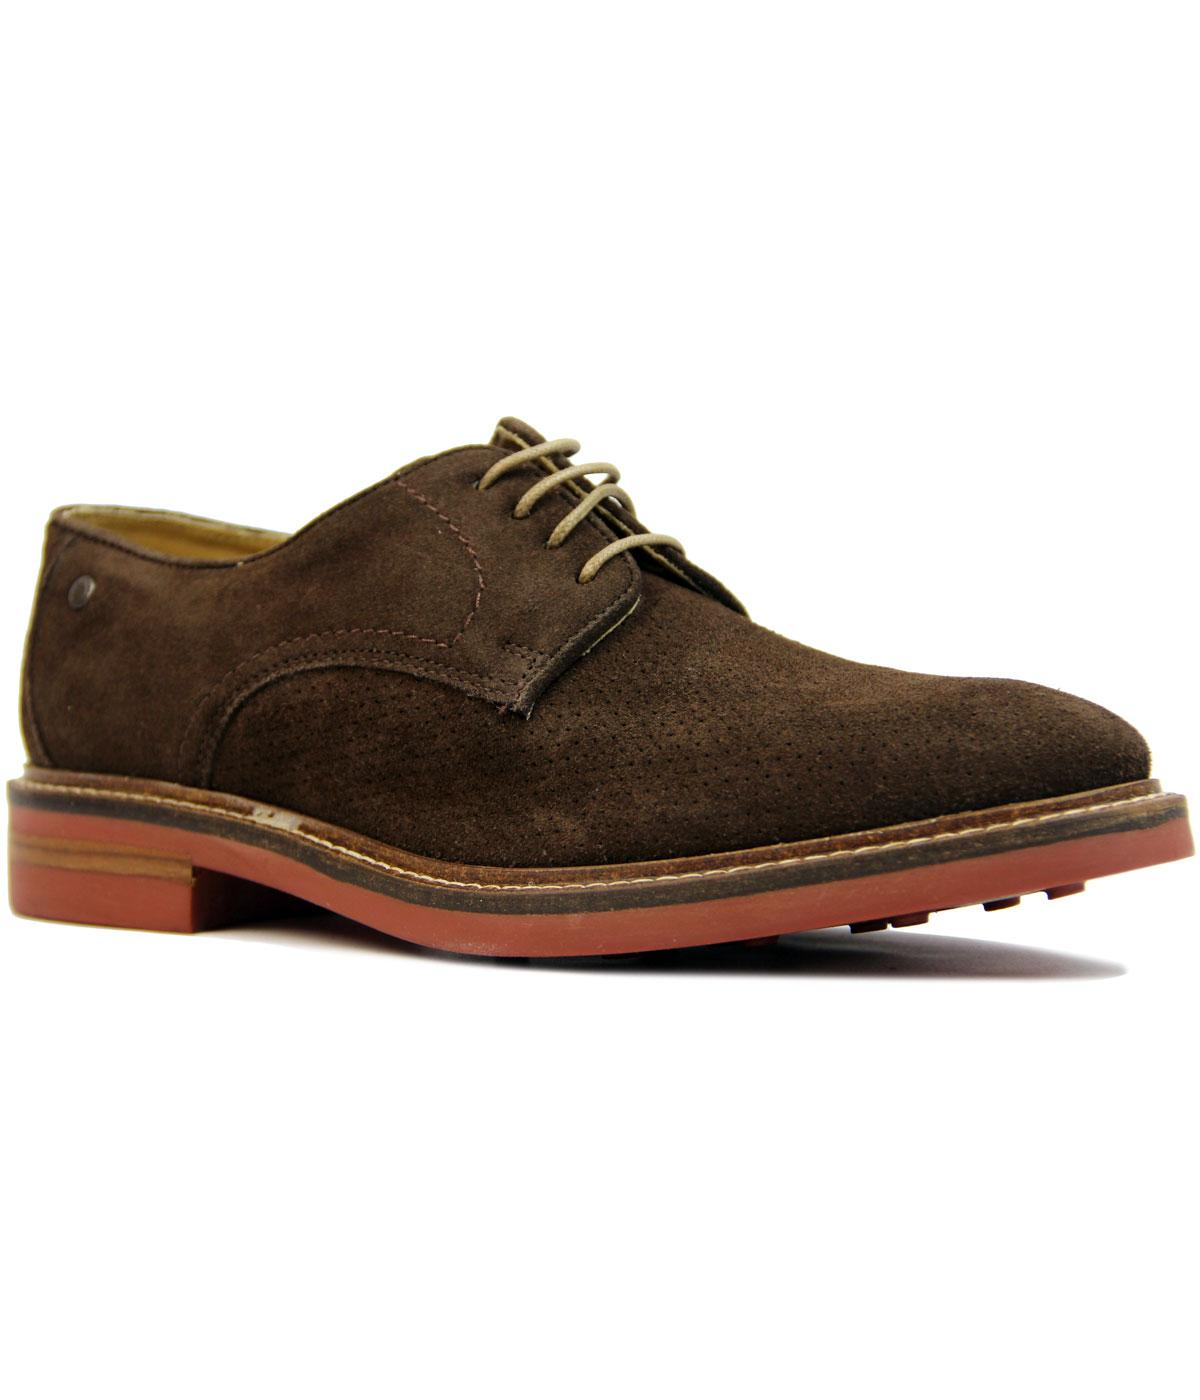 Stanford BASE LONDON Pin Punch Suede Derby Shoes